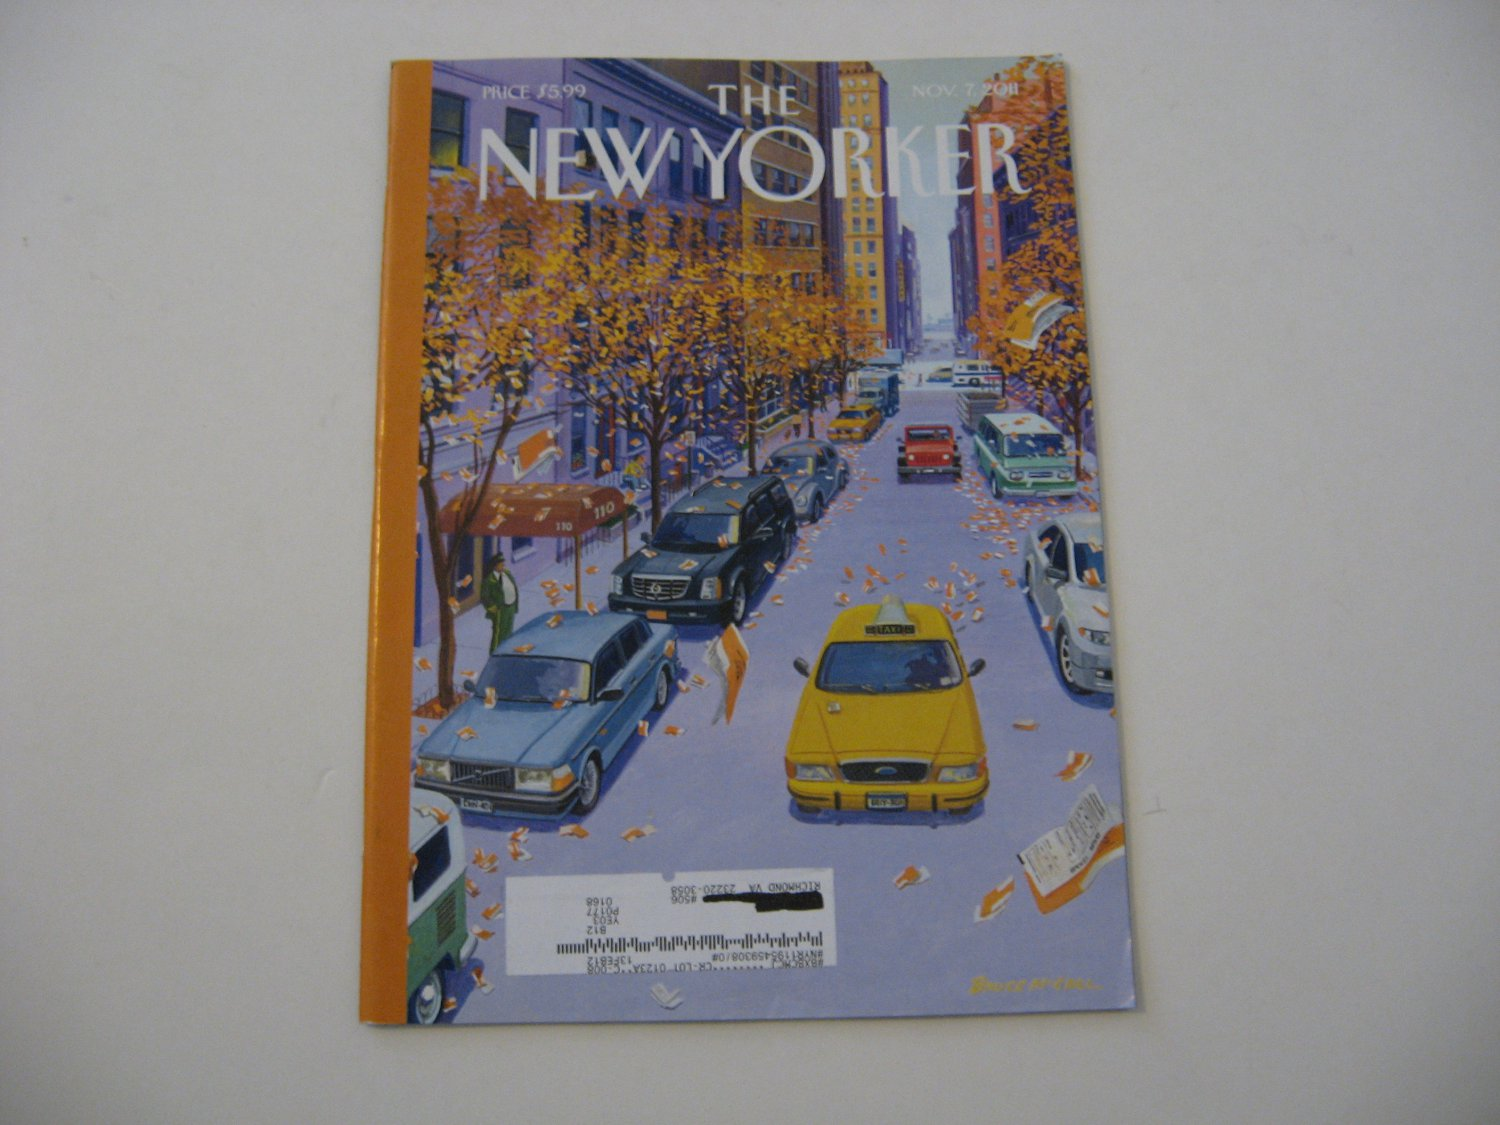 The New Yorker Magazine - Issue Date - Nov. 7, 2011